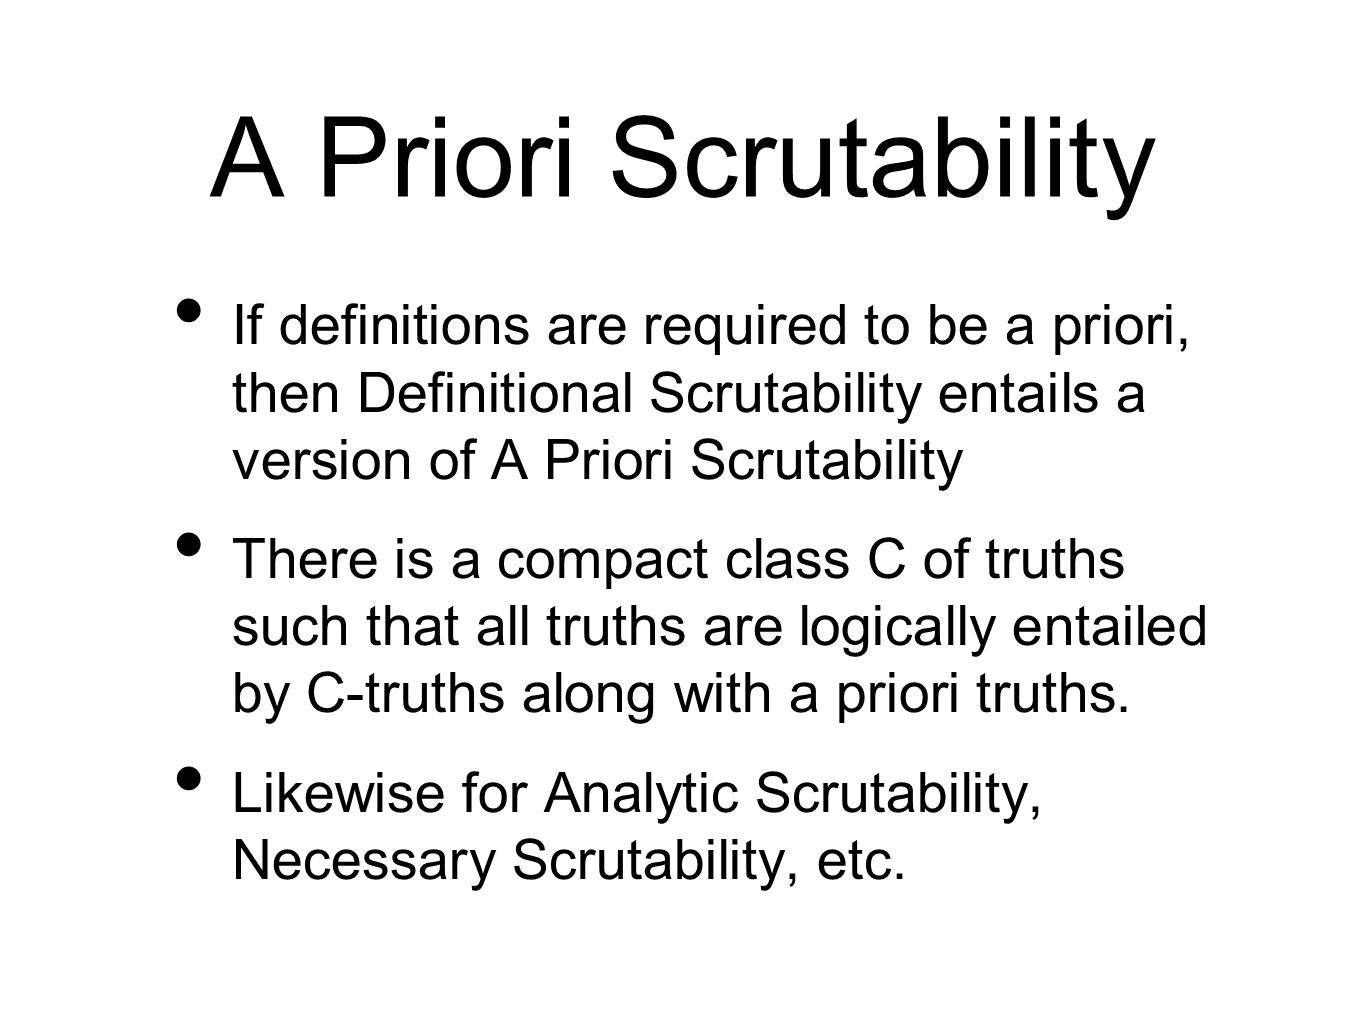 A Priori Scrutability If definitions are required to be a priori, then Definitional Scrutability entails a version of A Priori Scrutability There is a